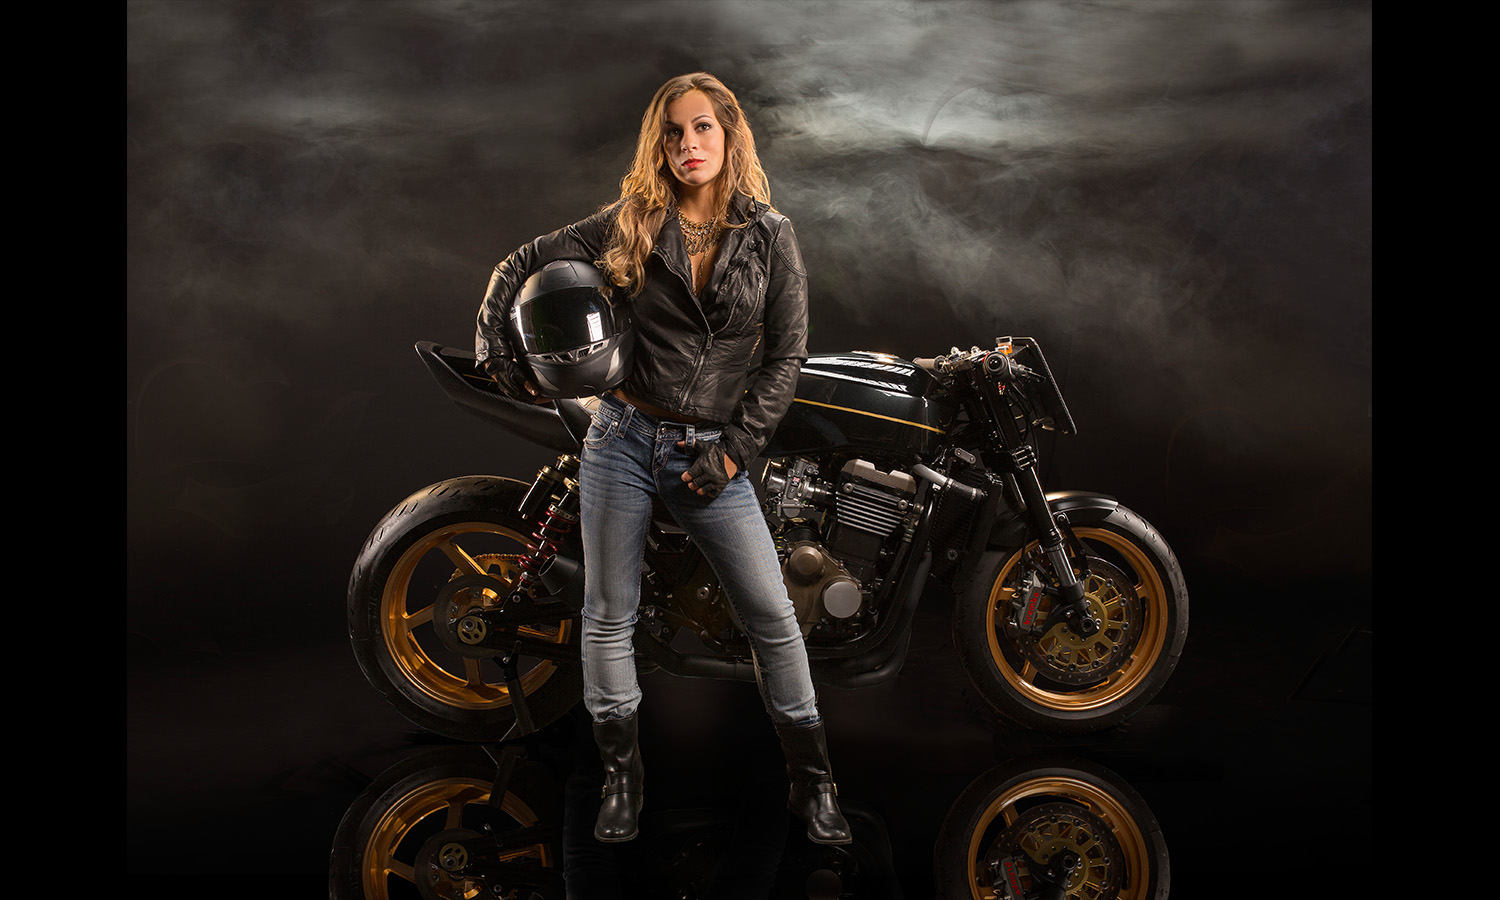 sexygirl with motorcycle Motorcycle Babes